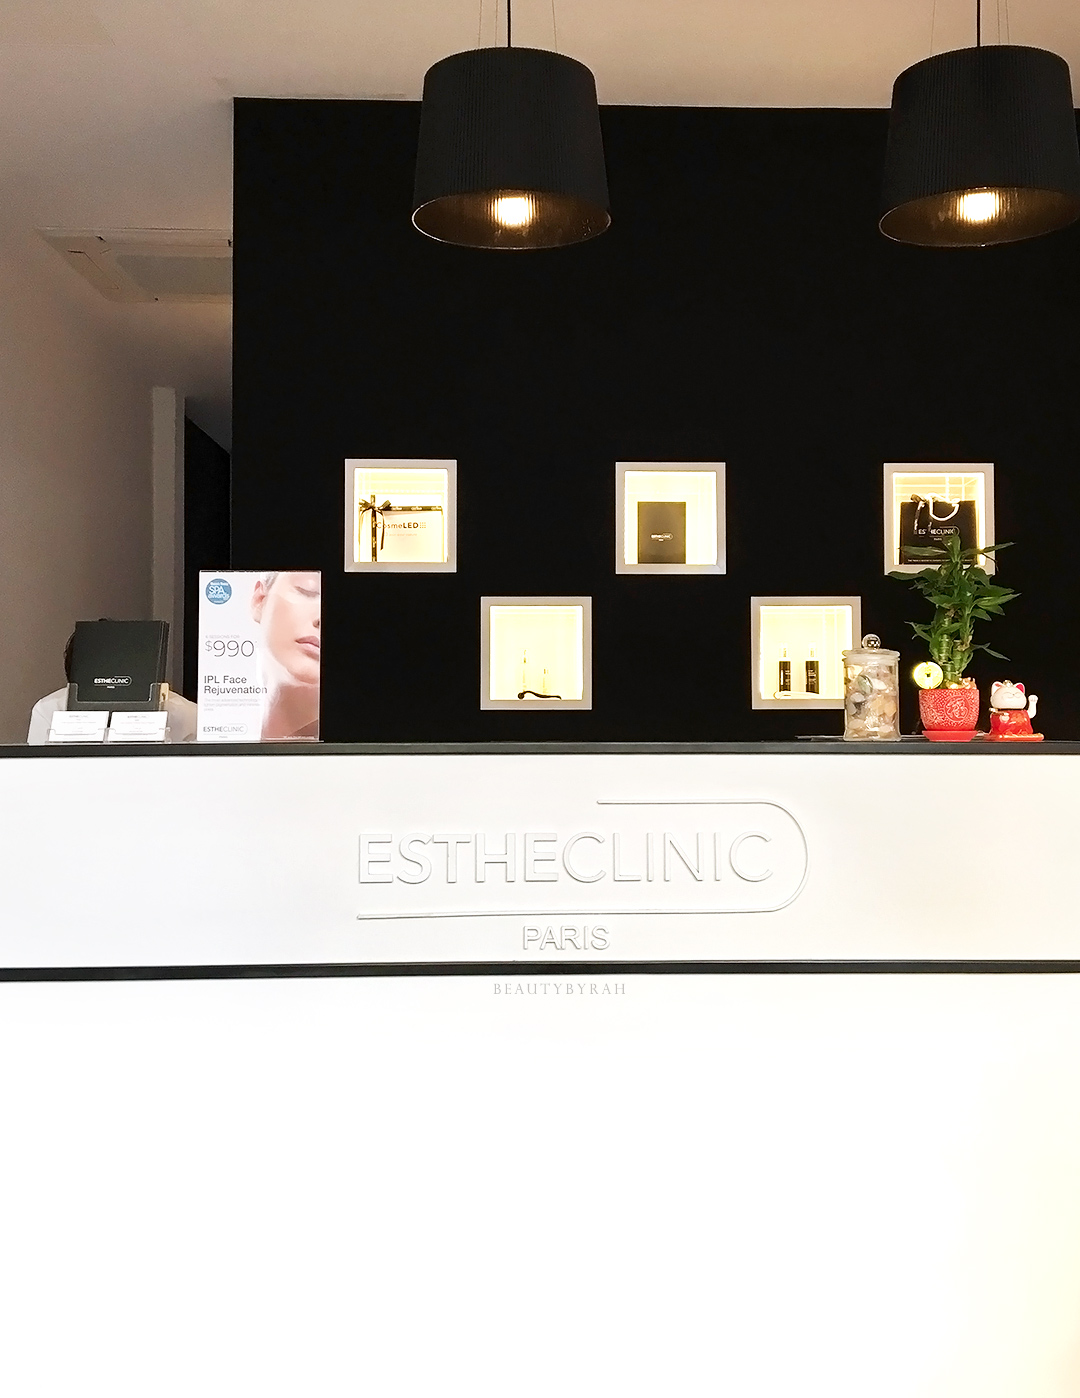 Estheclinic Intensive Stretch Marks Treatment Review